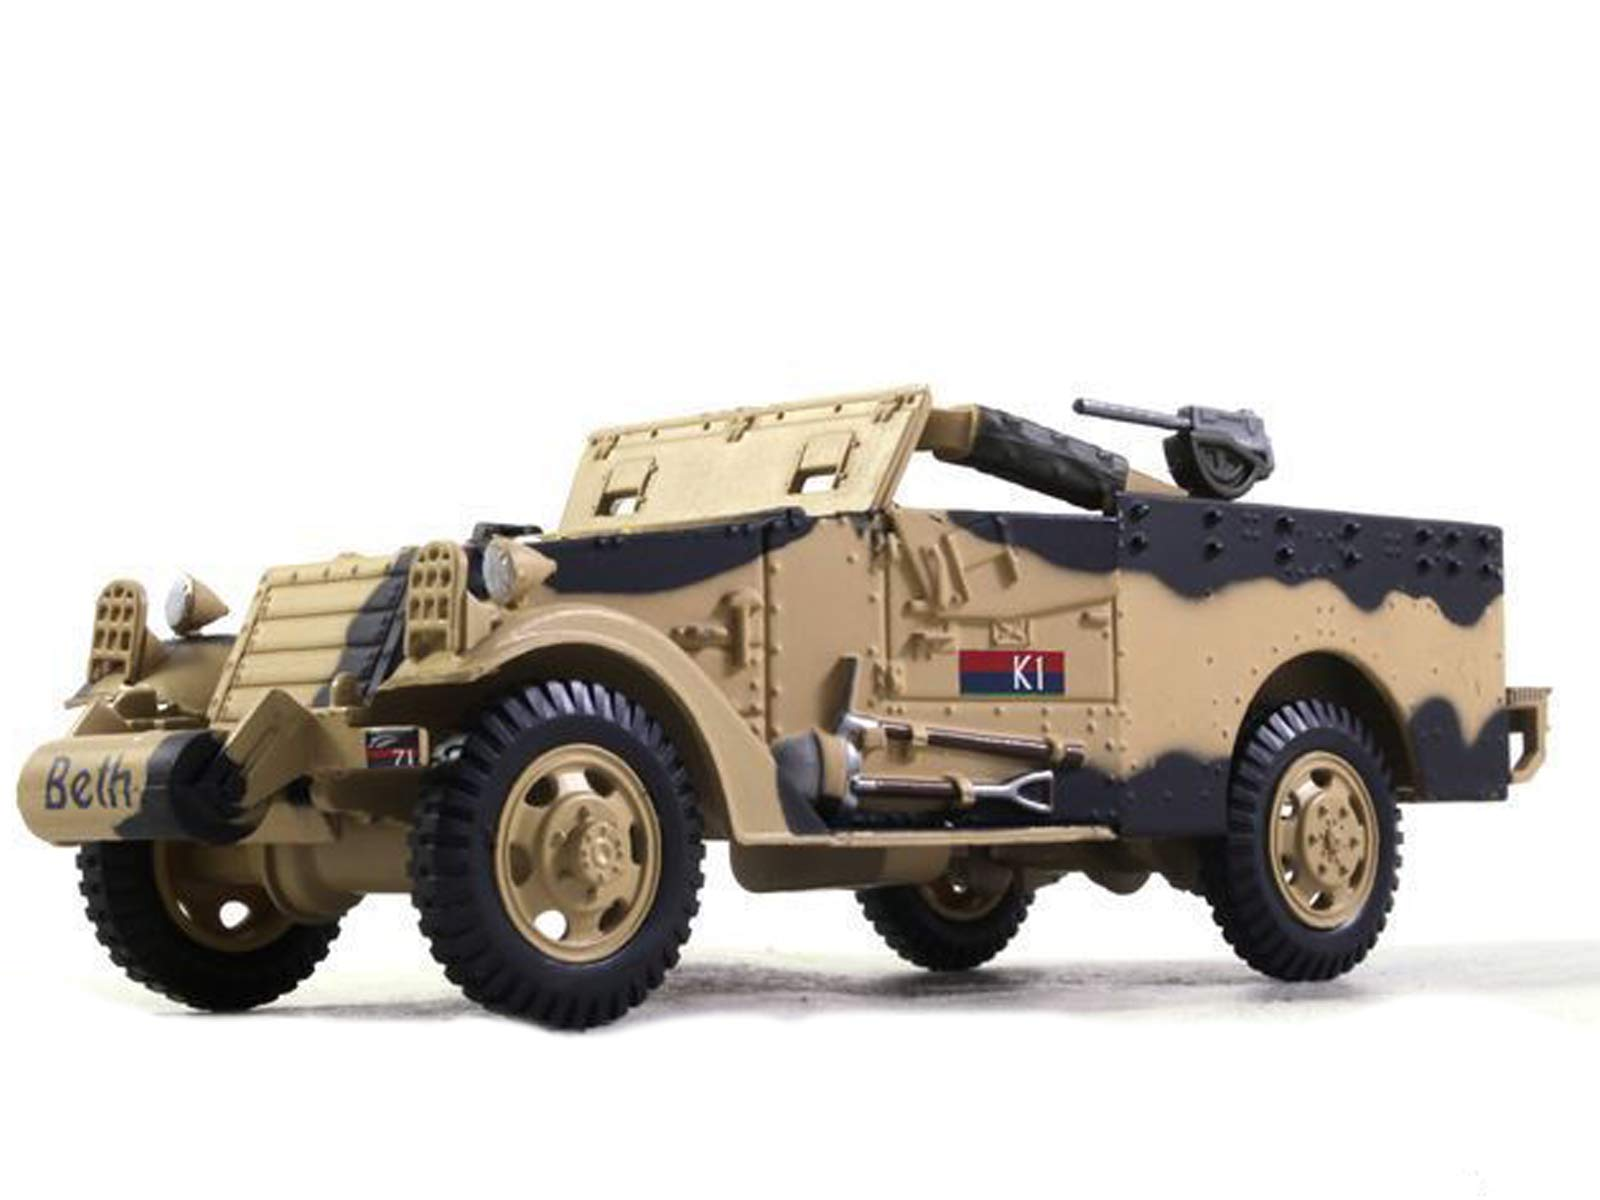 M3A1 Scout Car 1943 Year United States Armoured Car 1/43 Collectible Model Vehicle Ambulance and Gun Tractor by White Motor Company